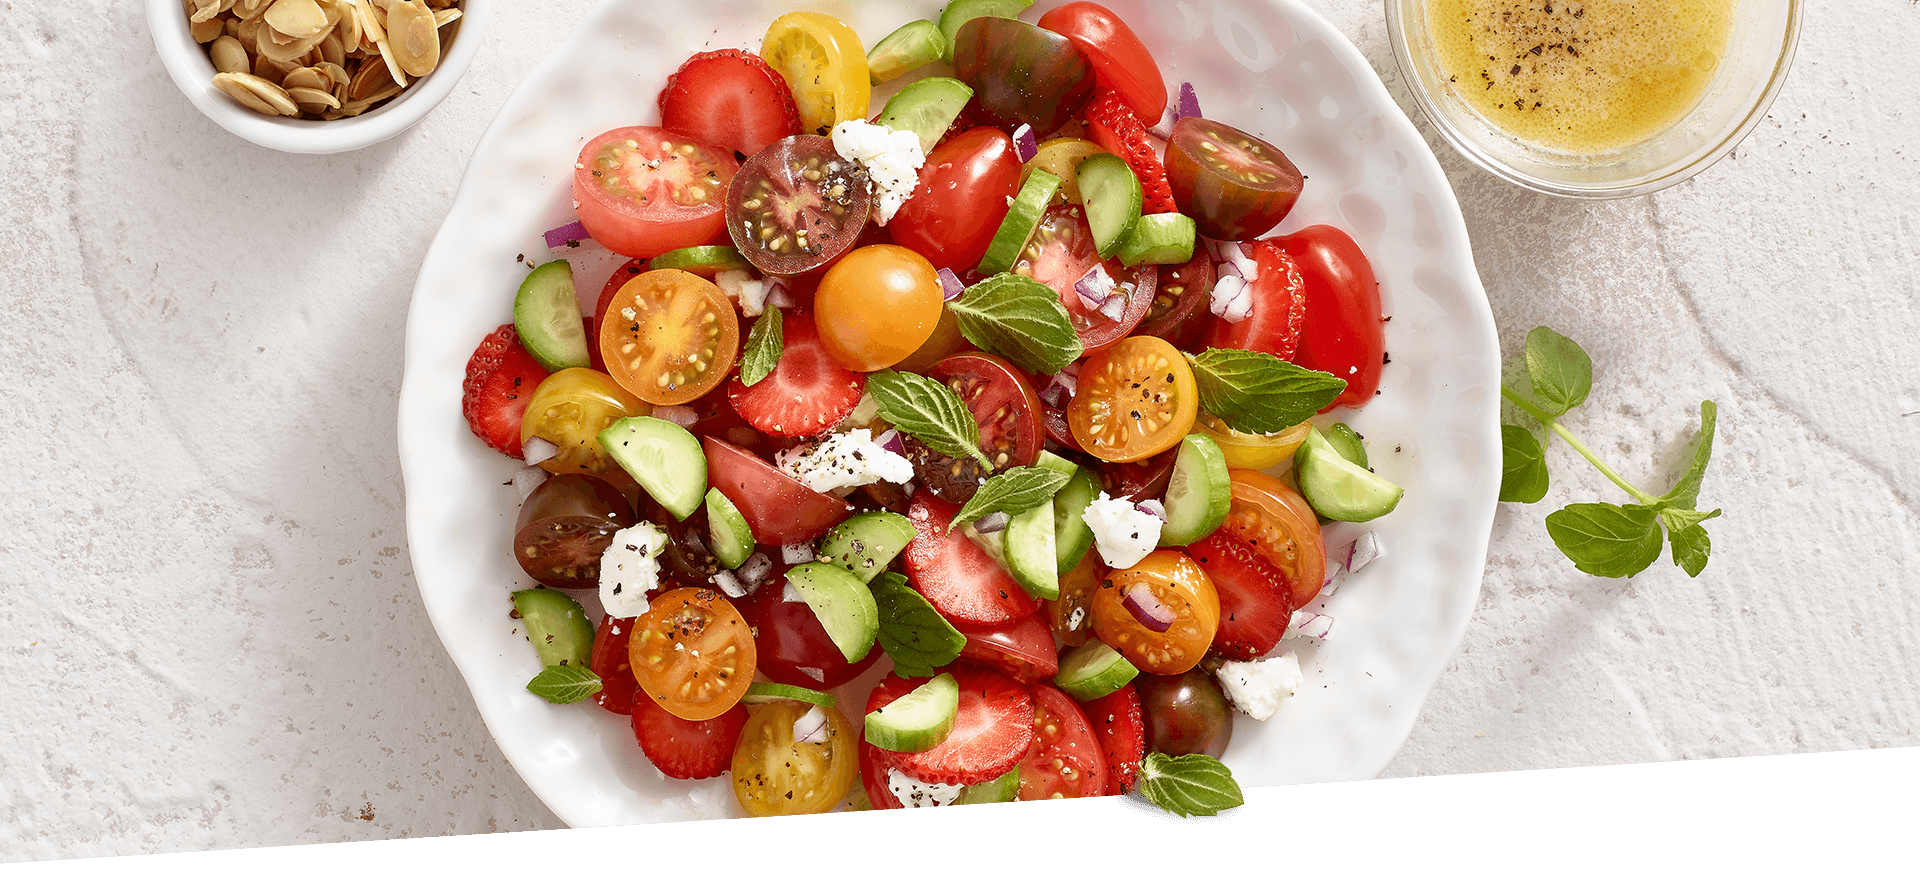 Tomato Strawberry Salad header BG